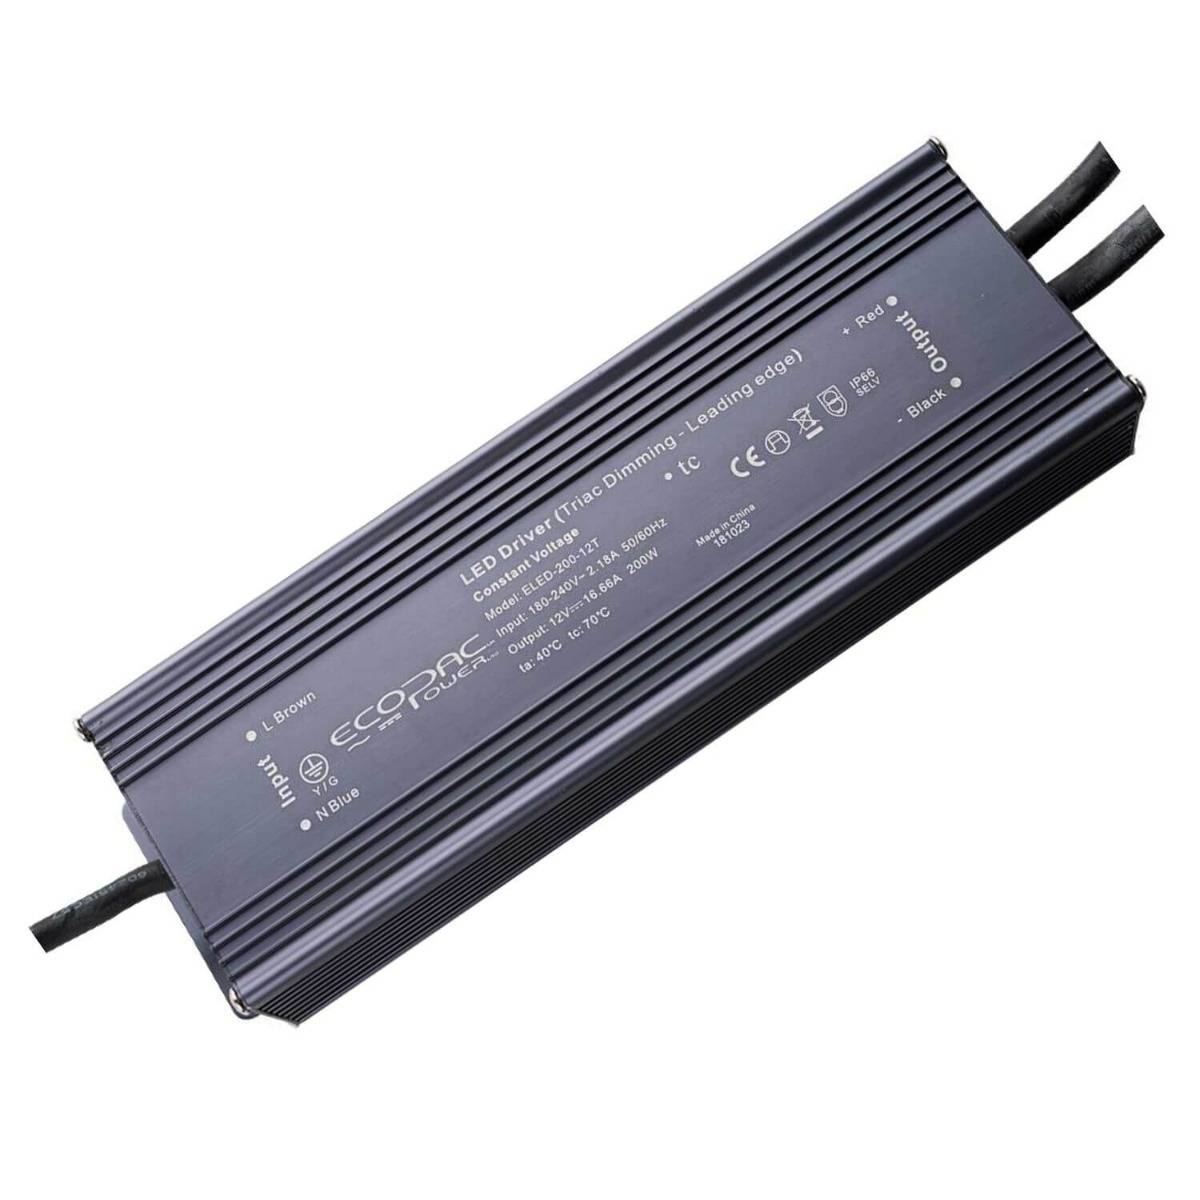 Simple Lighting 200w Dimmable Leading Edge LED Driver 12 or 24v